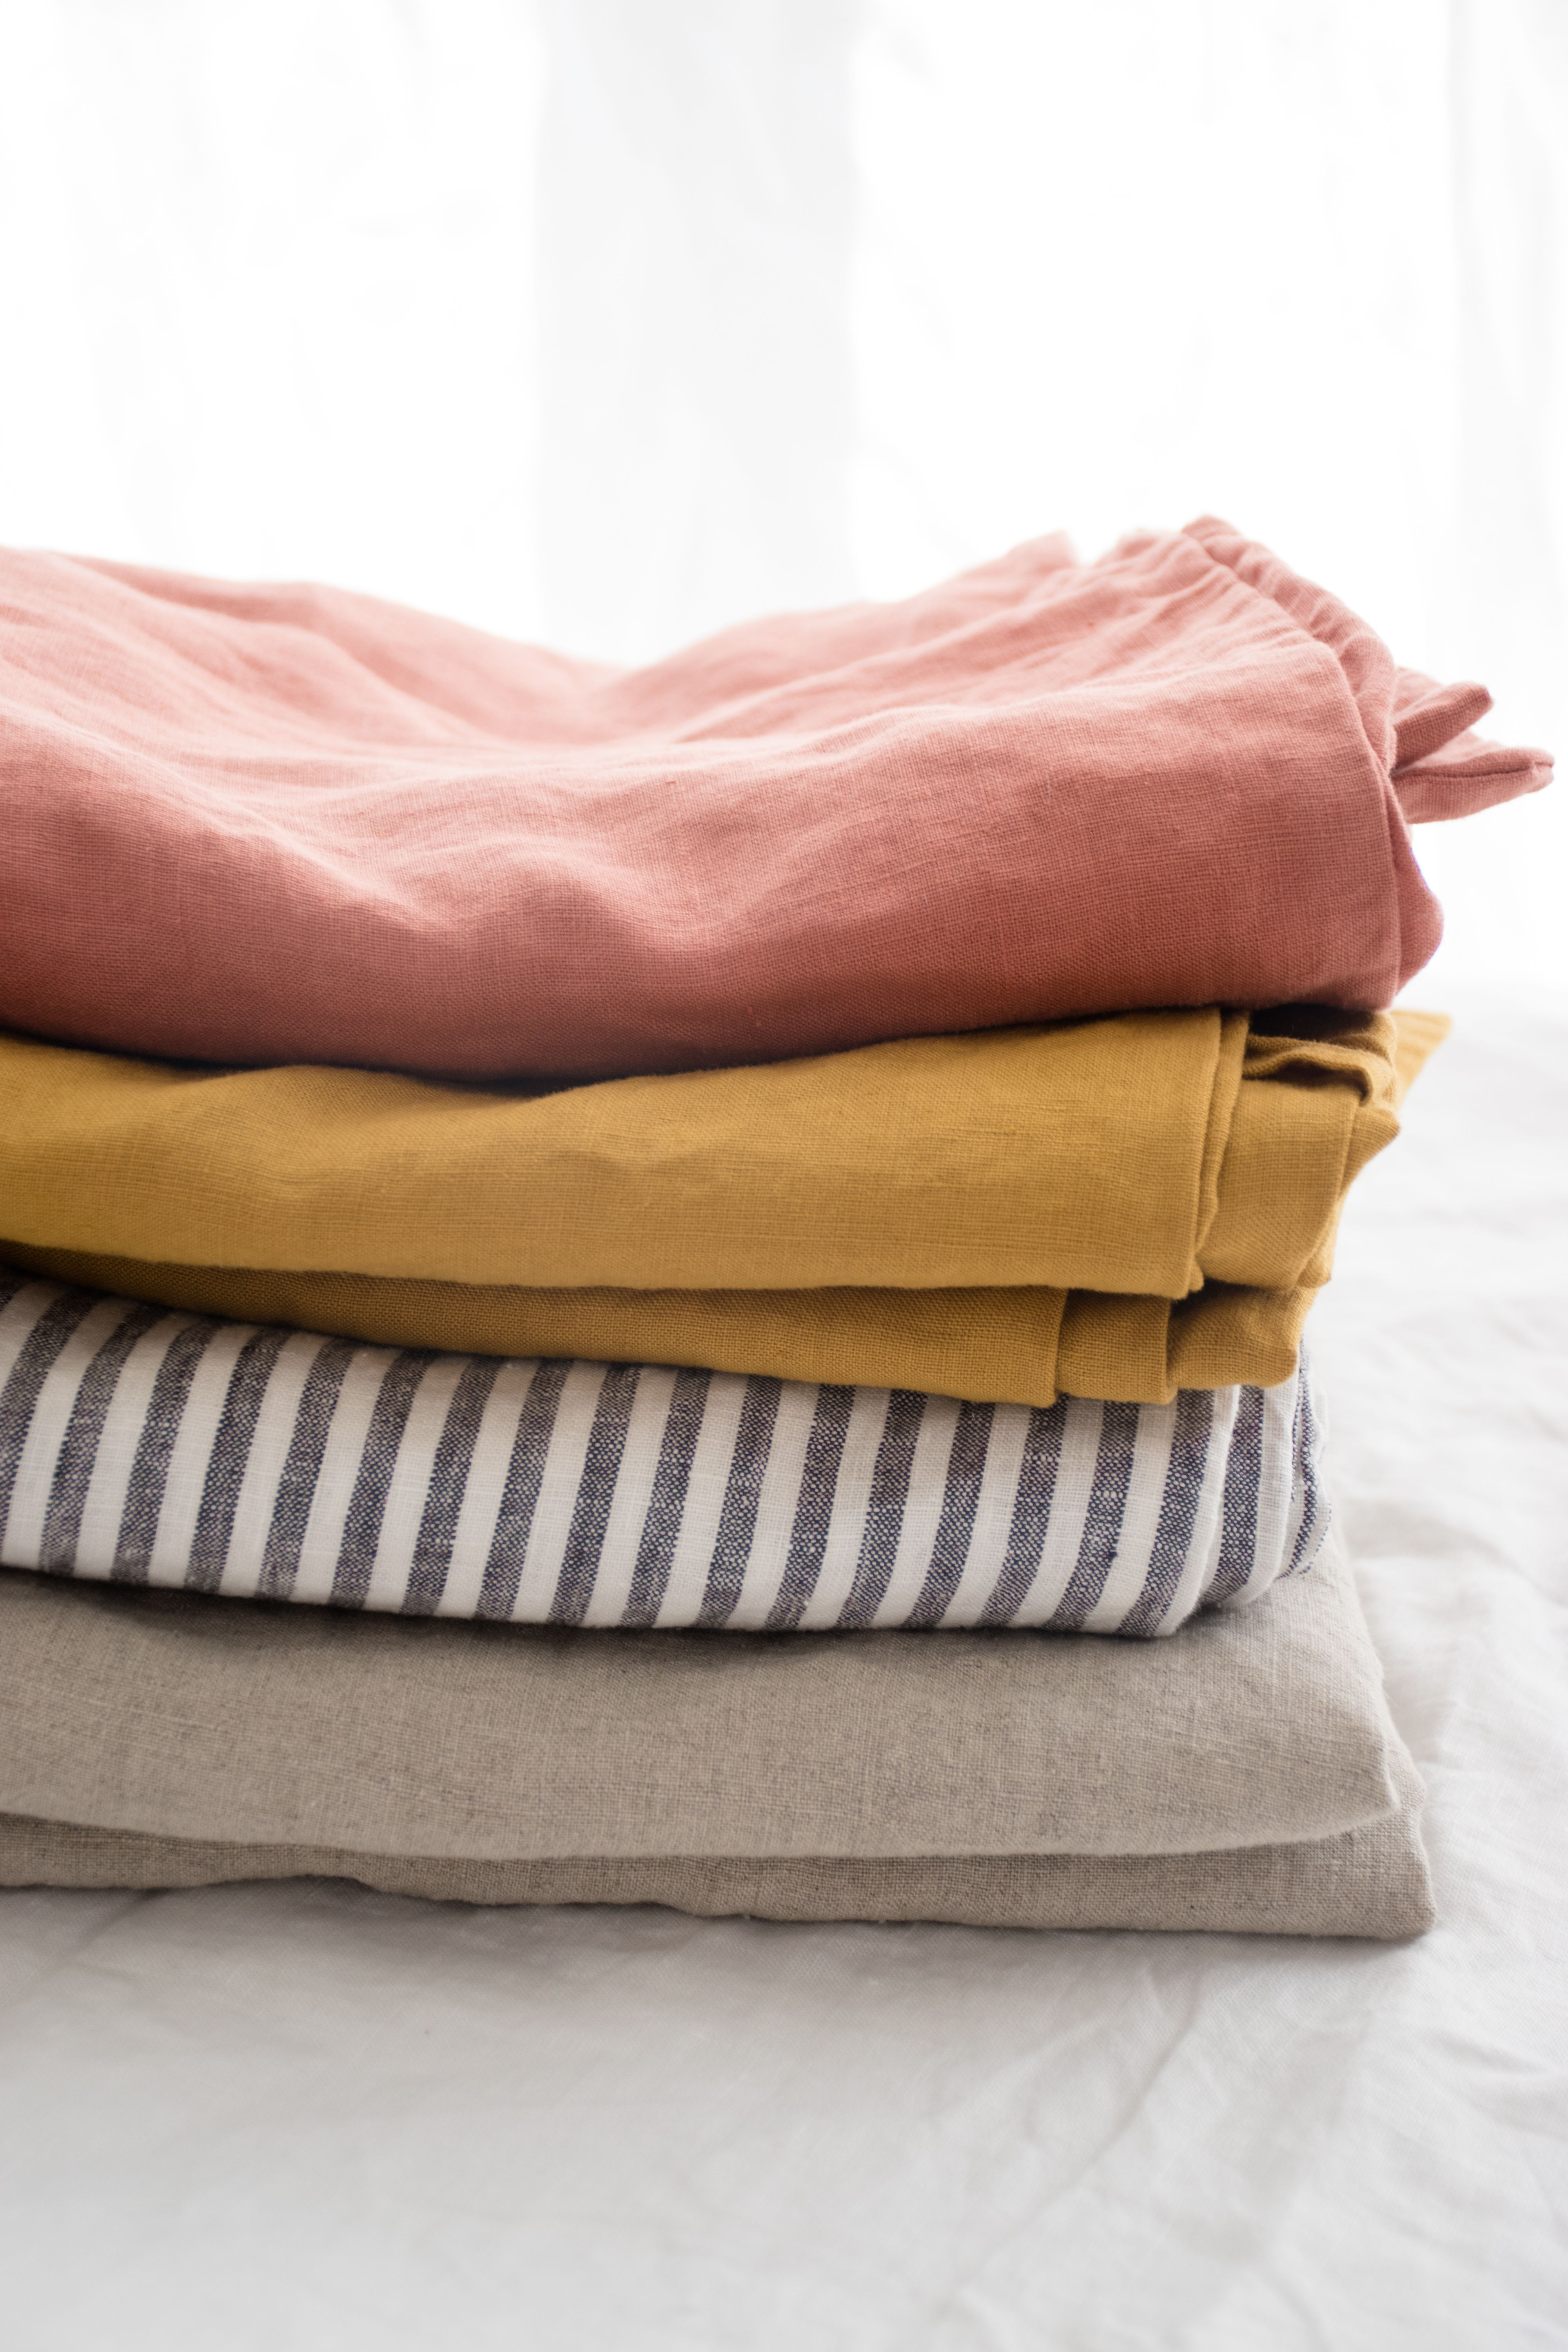 Stacks of stonewashed, French flax linen in our exclusive